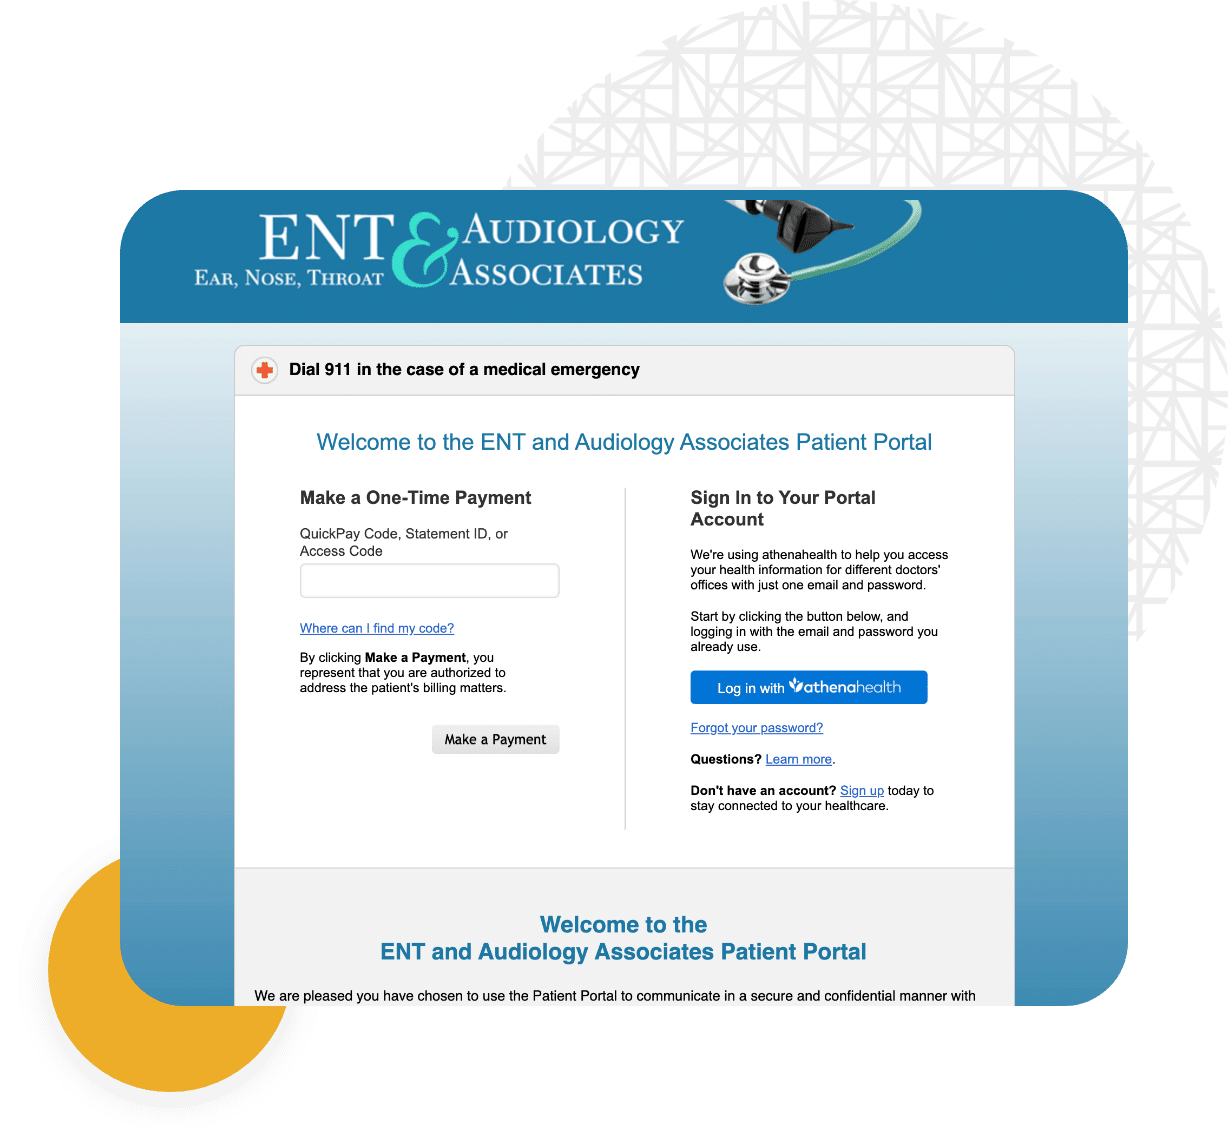 Image of ENT and Audiology's Patient Portal